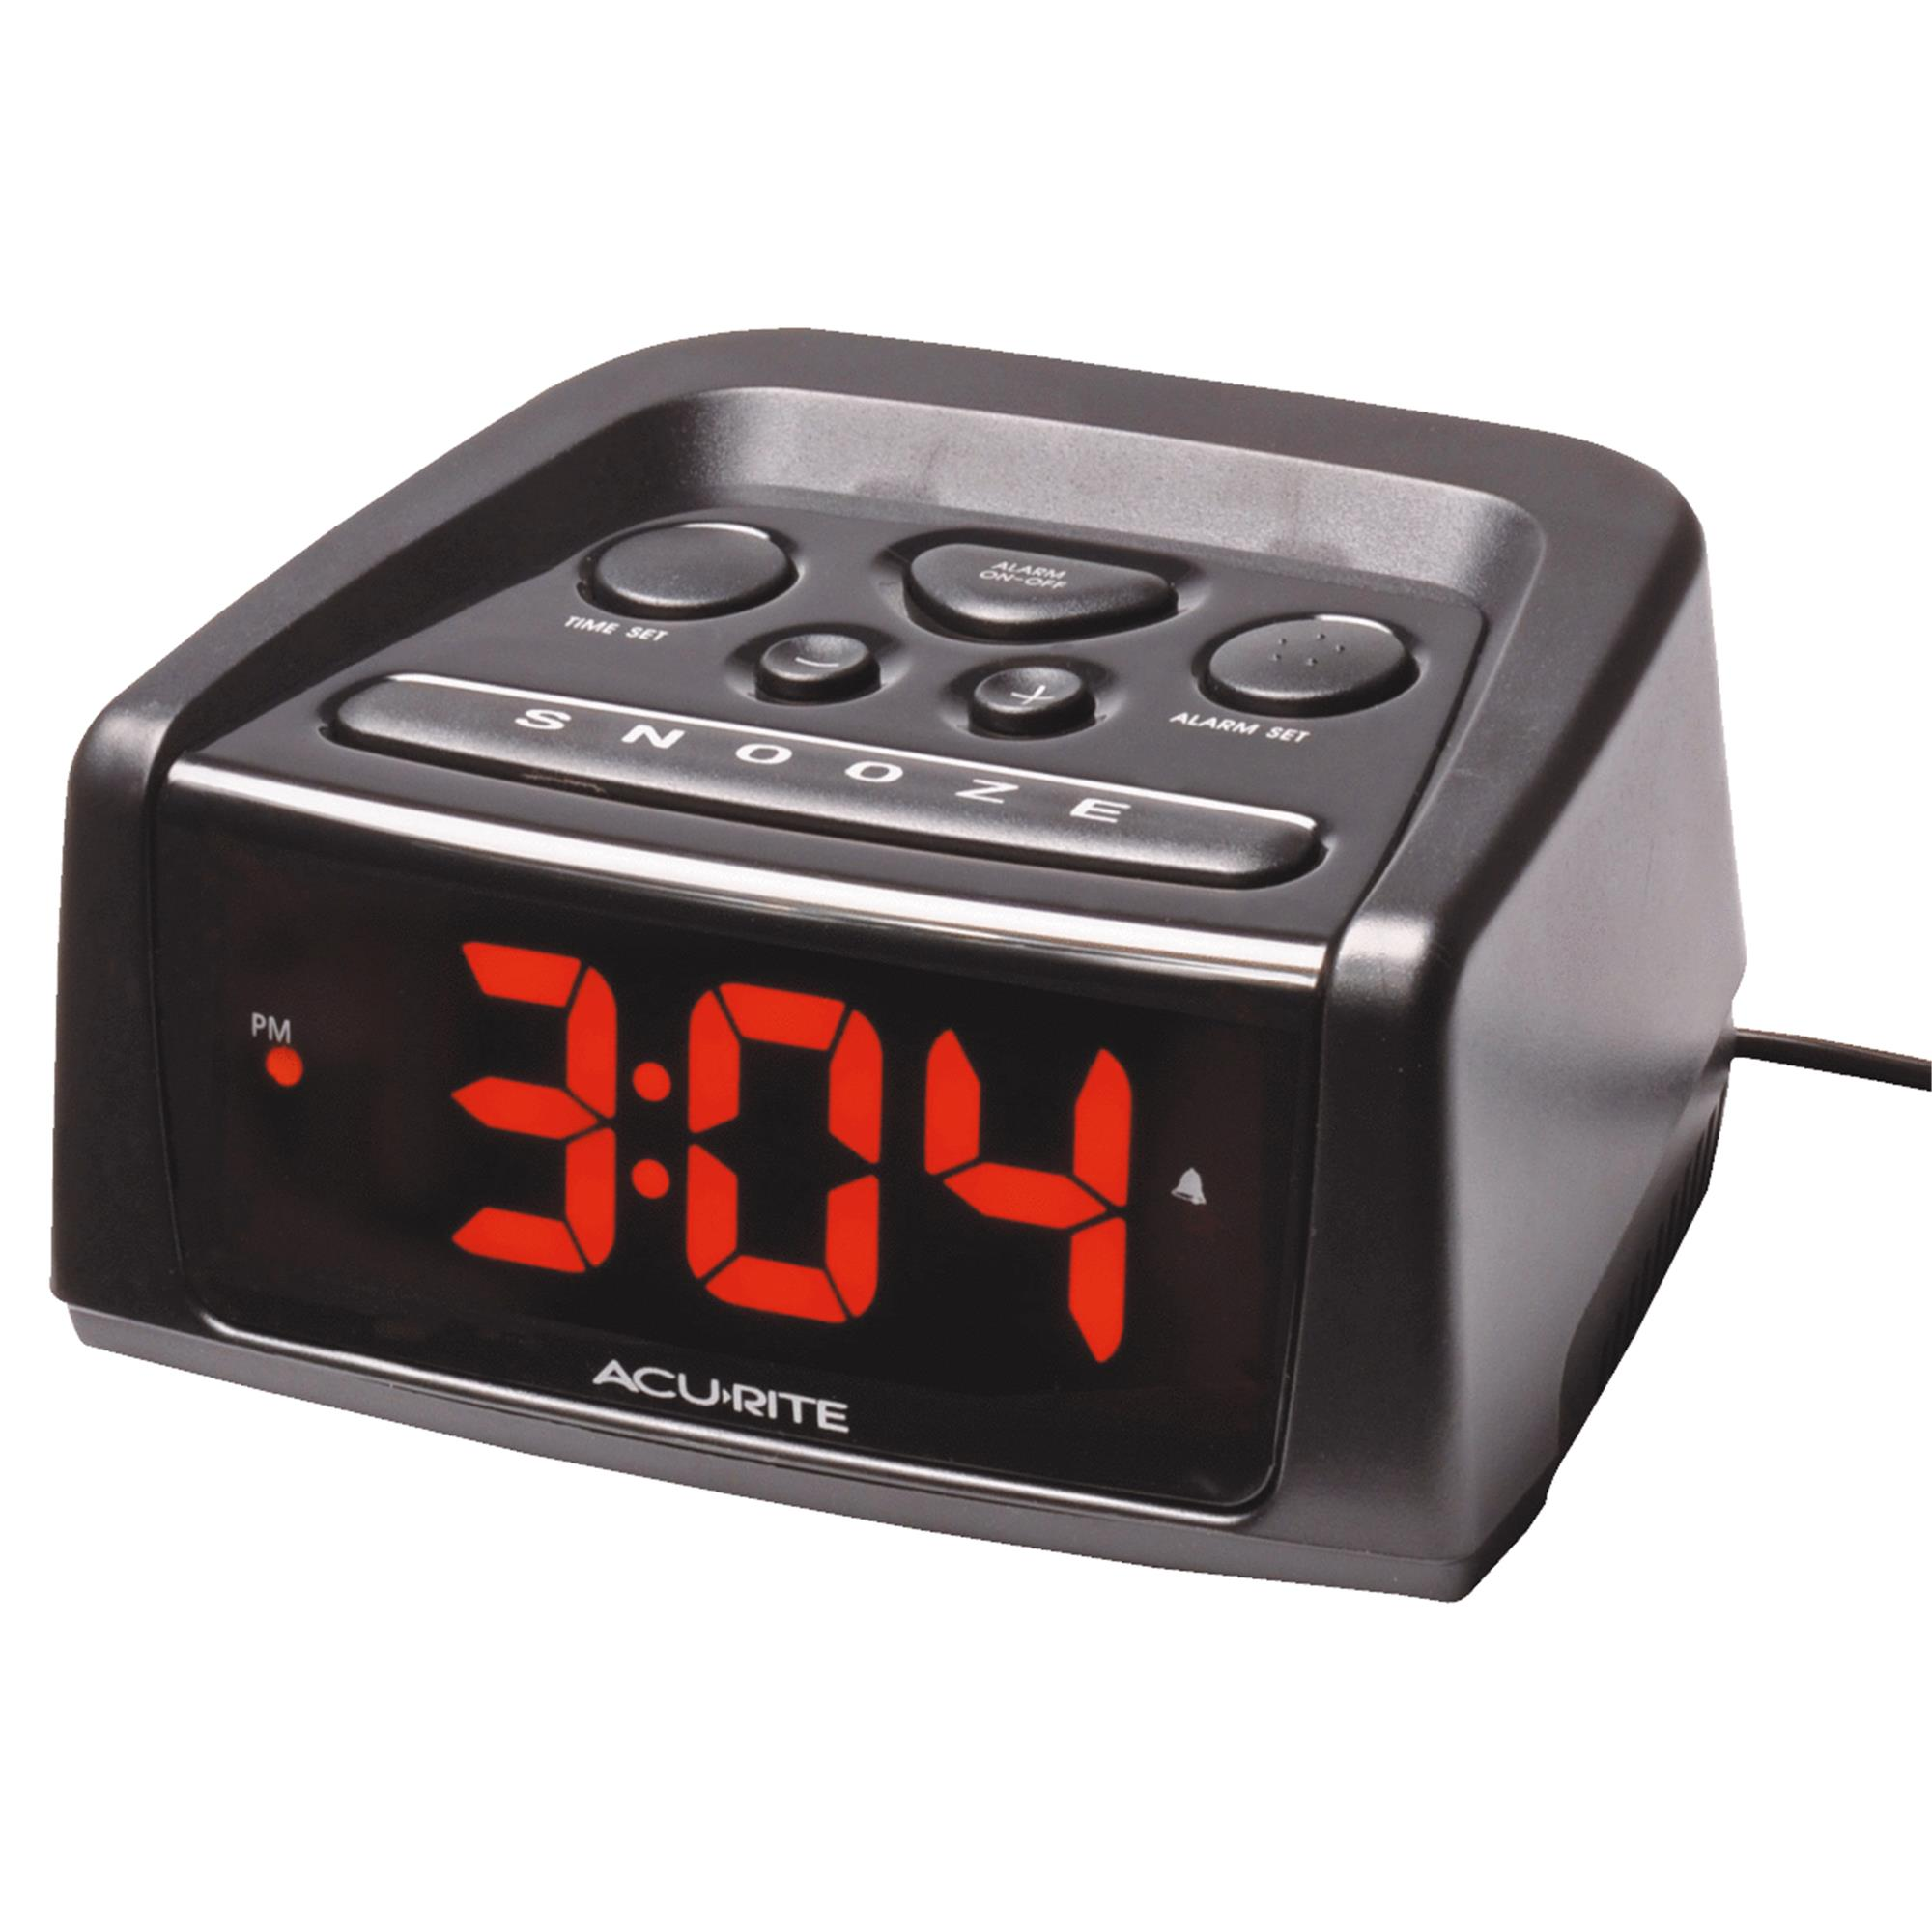 AcuRite Big and Loud Electric IntelliTime Alarm Clock by Generic